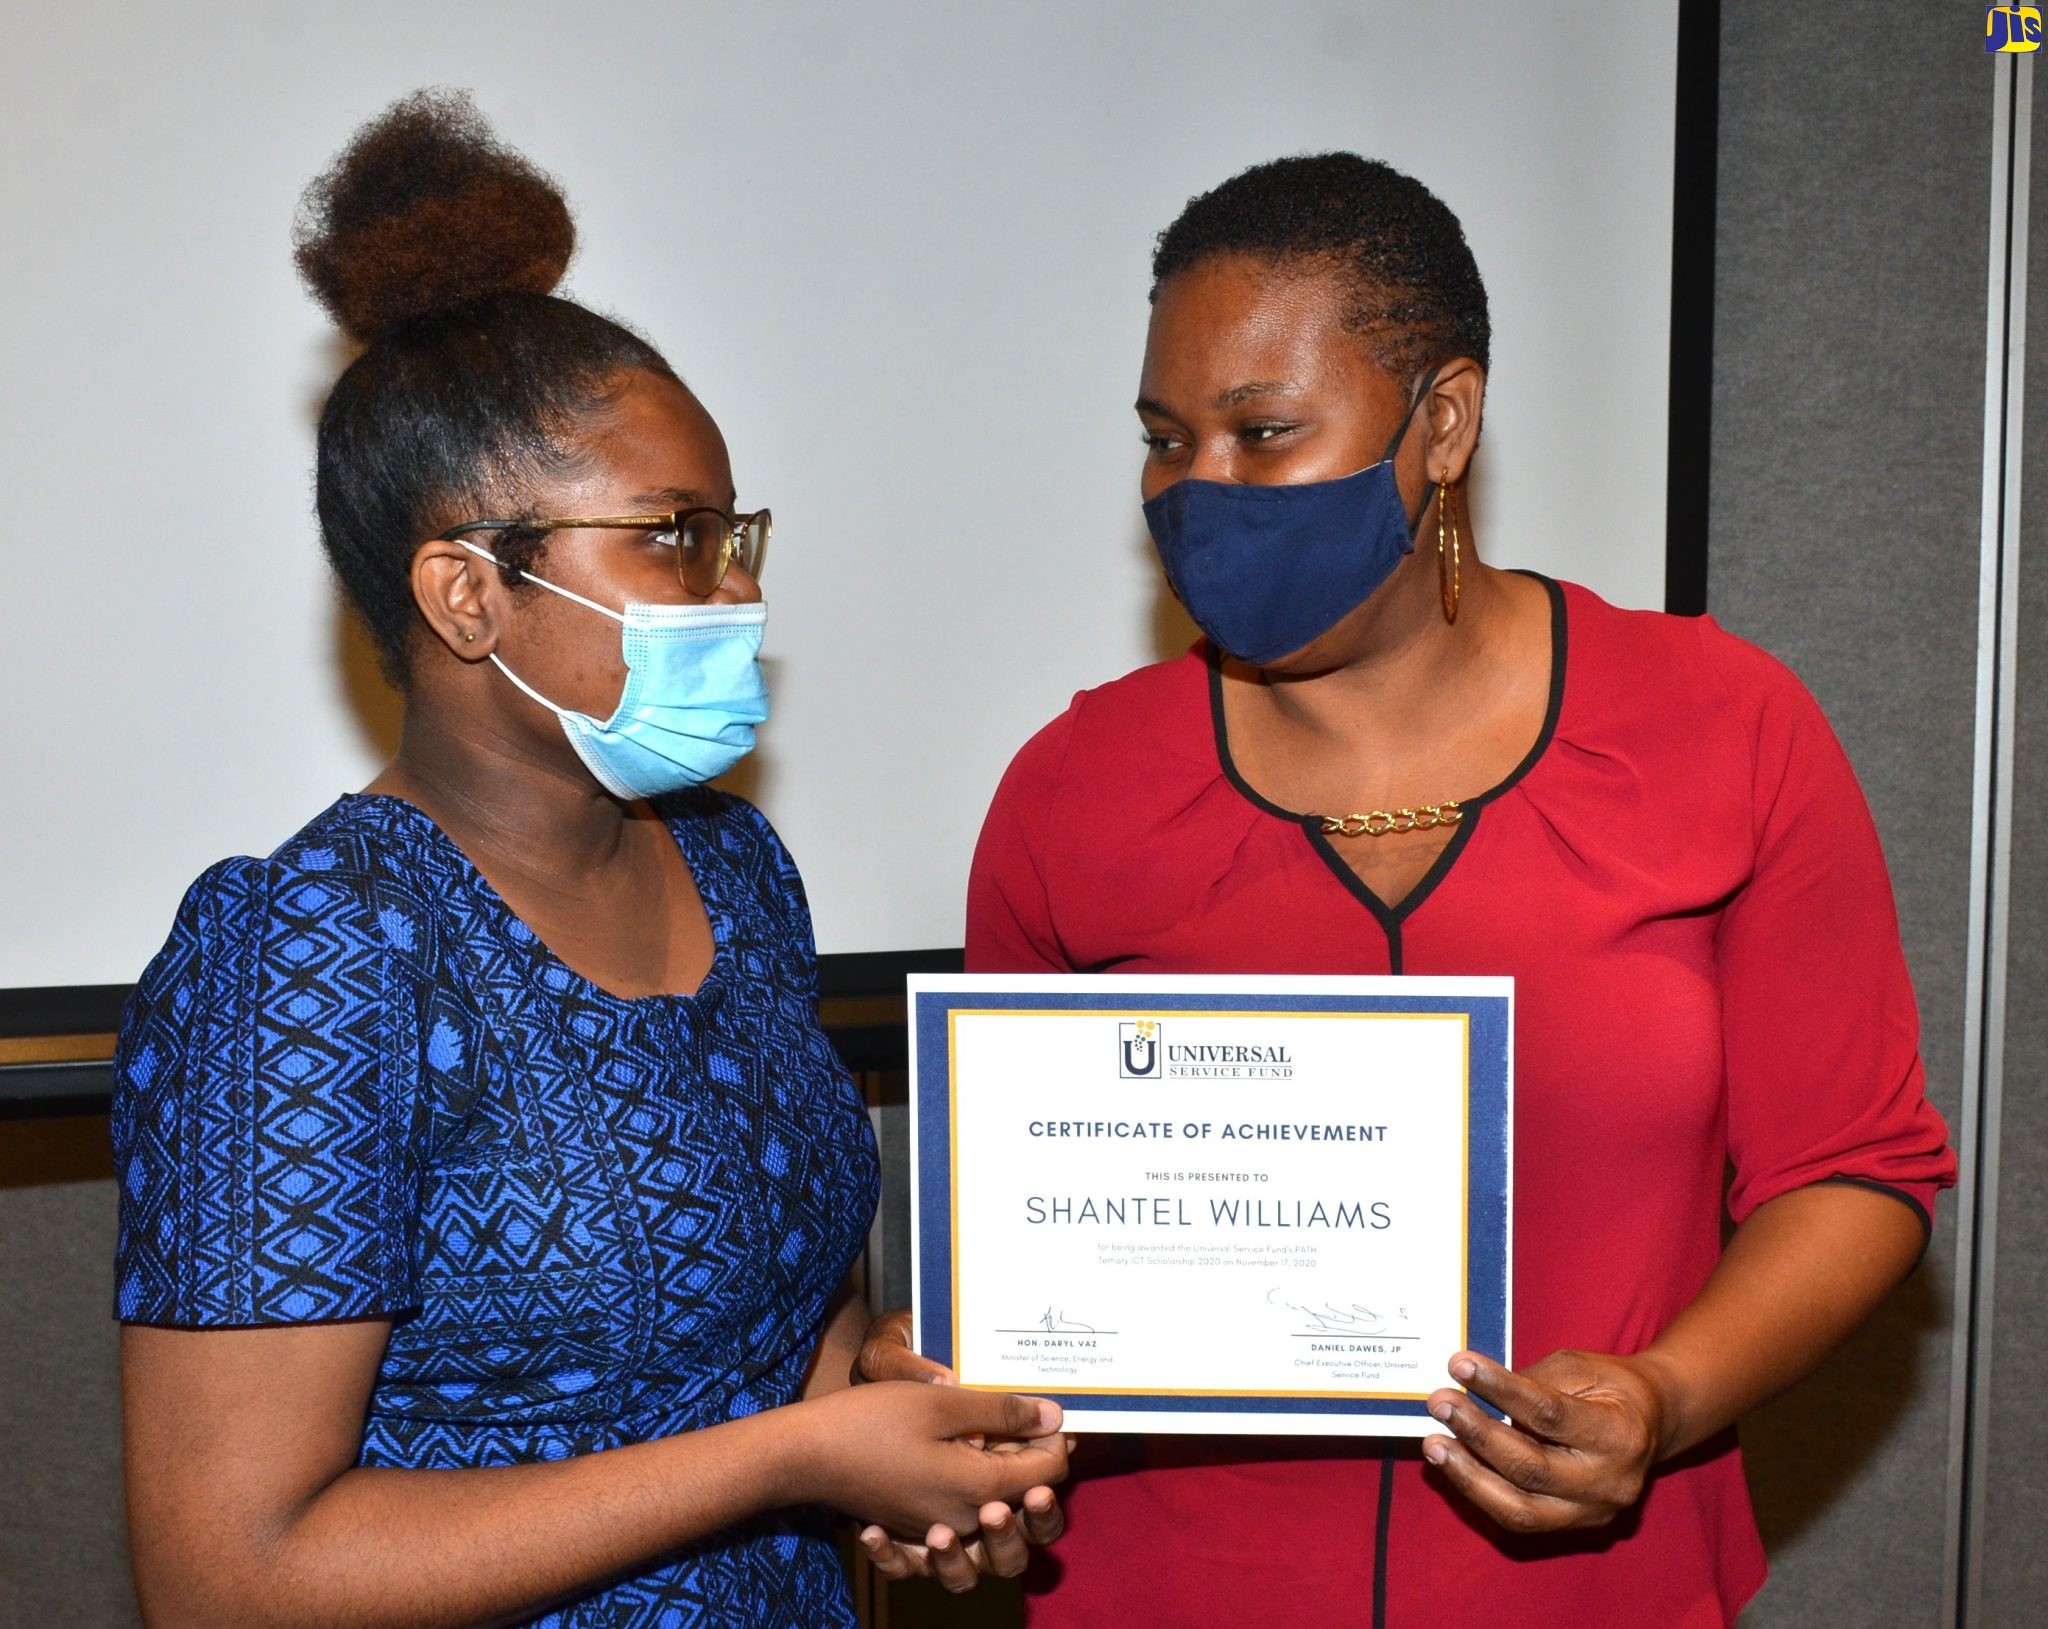 Shantel Williams, an aspiring ICT teacher, is the first recipient of the USF inaugural Programme of Advancement Through Health and Education (PATH) Tertiary ICT Scholarship.